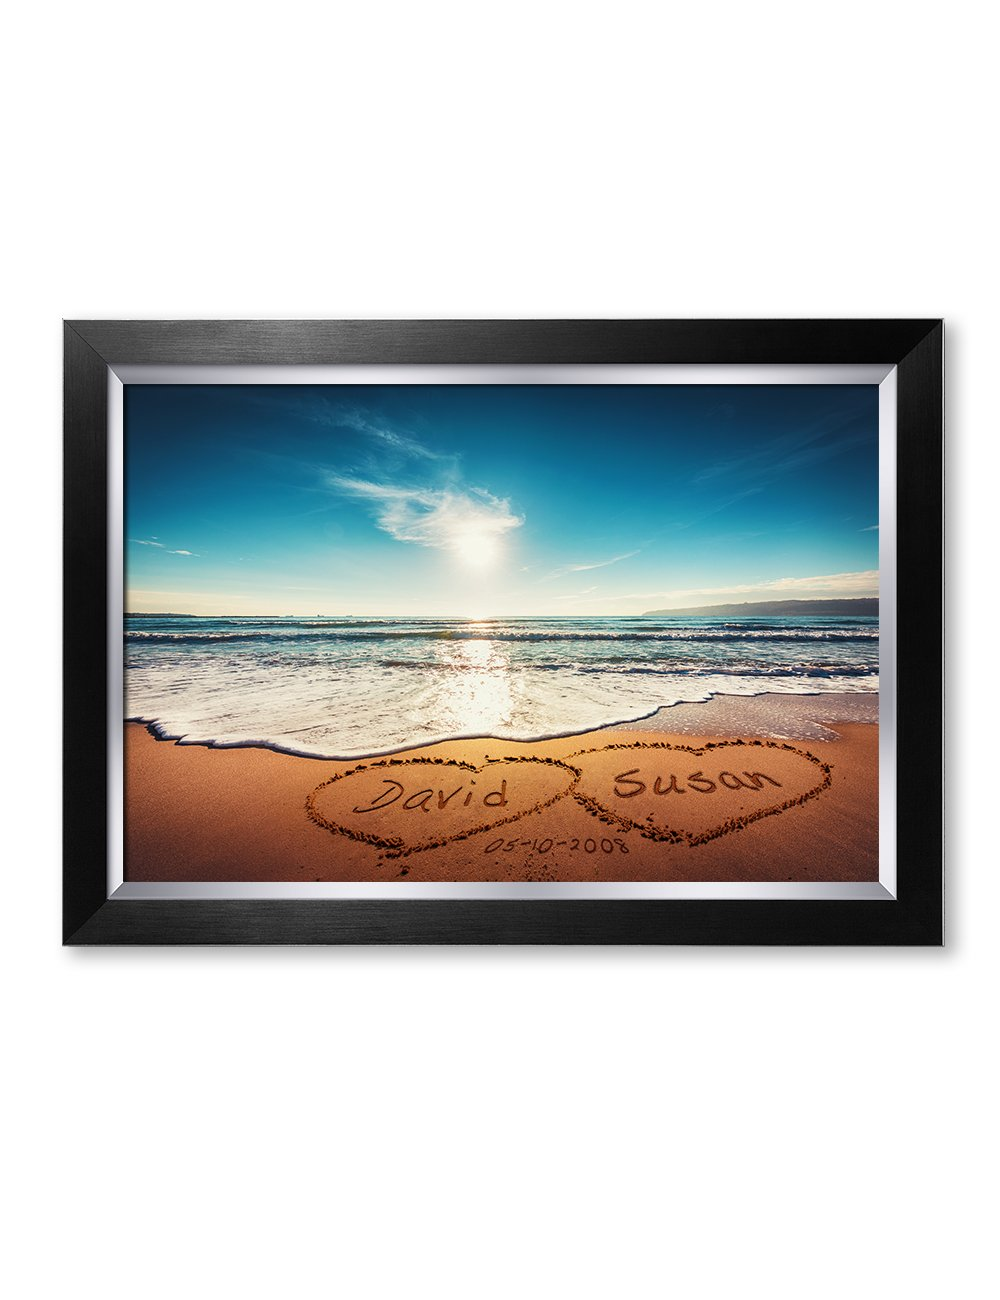 IPIC - ''Heart in Heart, Personalized Artwork with Names and Date on, Perfect Love Gift for Anniversary,Wedding,Birthday and Holidays. Picture Size: 24x16, Framed Size: 27x19x1.25